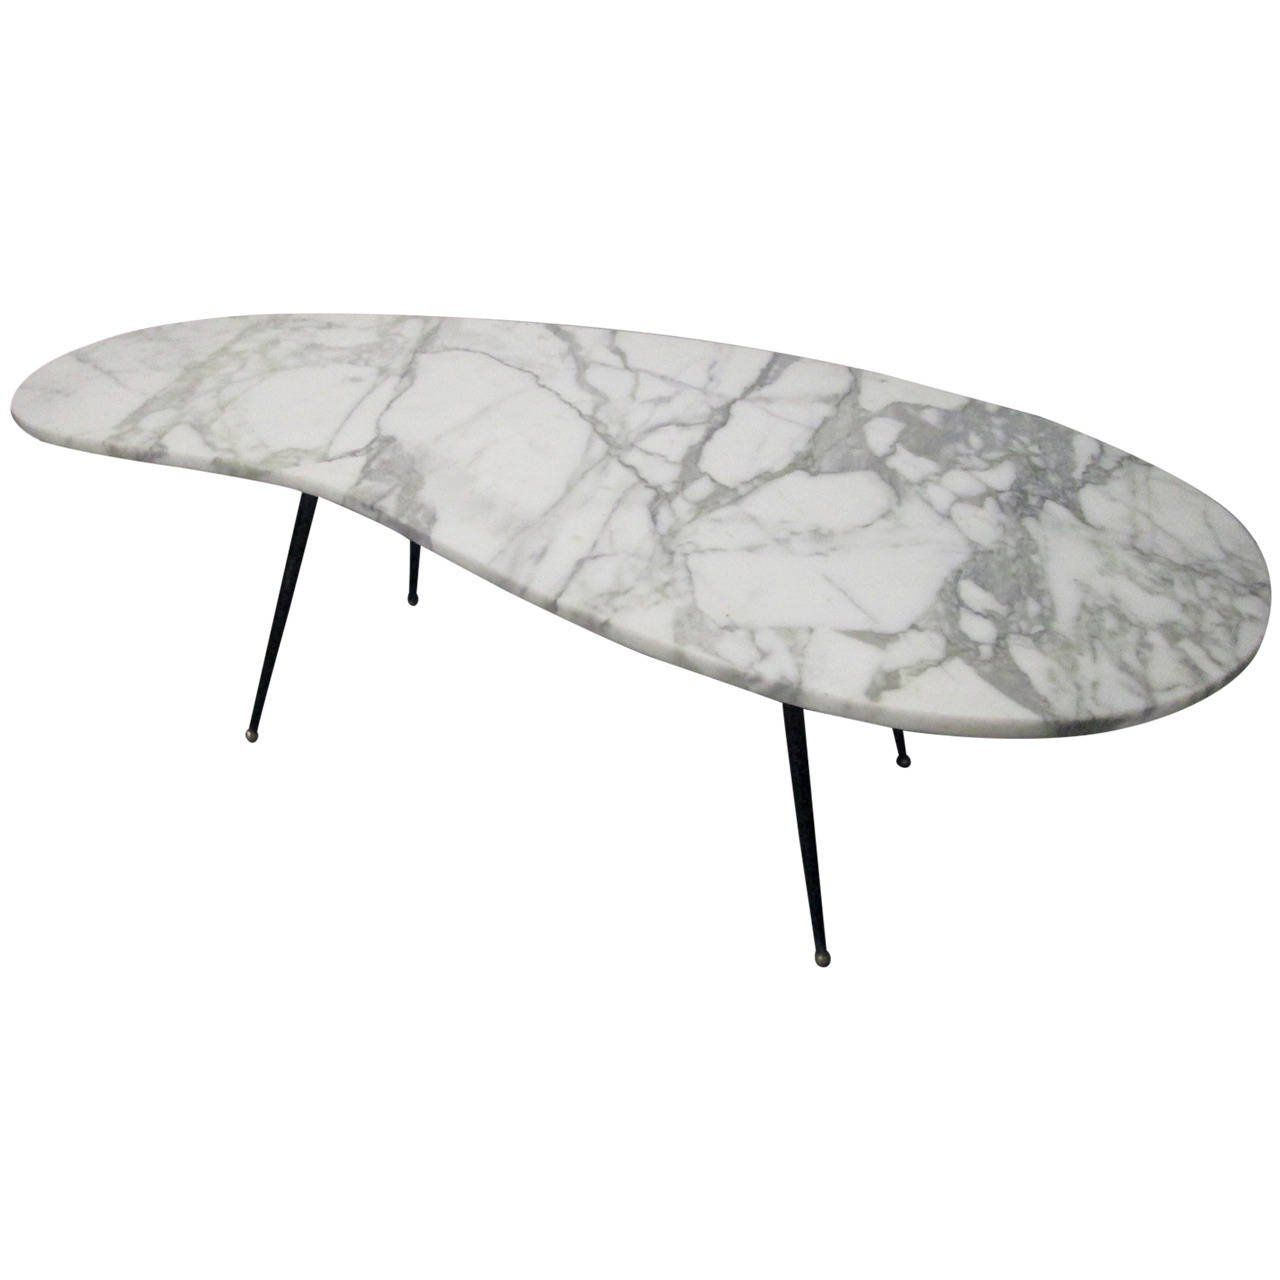 Italian Kidney Shaped Marble Top And Iron Coffee Table Style Gio Ponti Coffee Table Iron Coffee Table Coffee Tables For Sale [ 1280 x 1280 Pixel ]